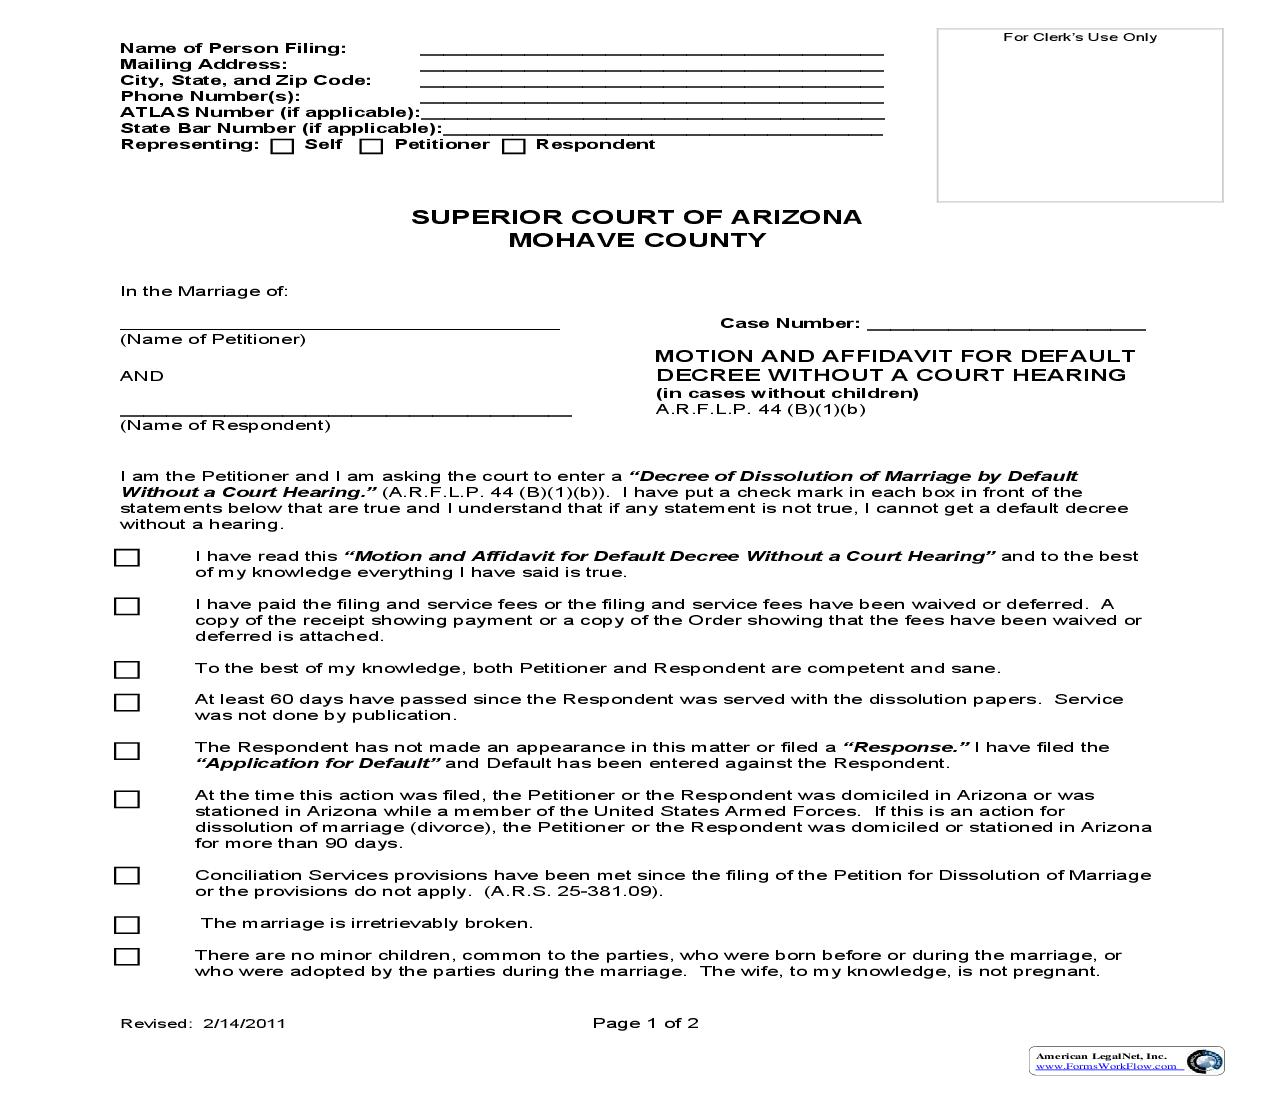 Motion And Affidavit For Default Decree Without Hearing (Without Children) | Pdf Fpdf Doc Docx | Arizona